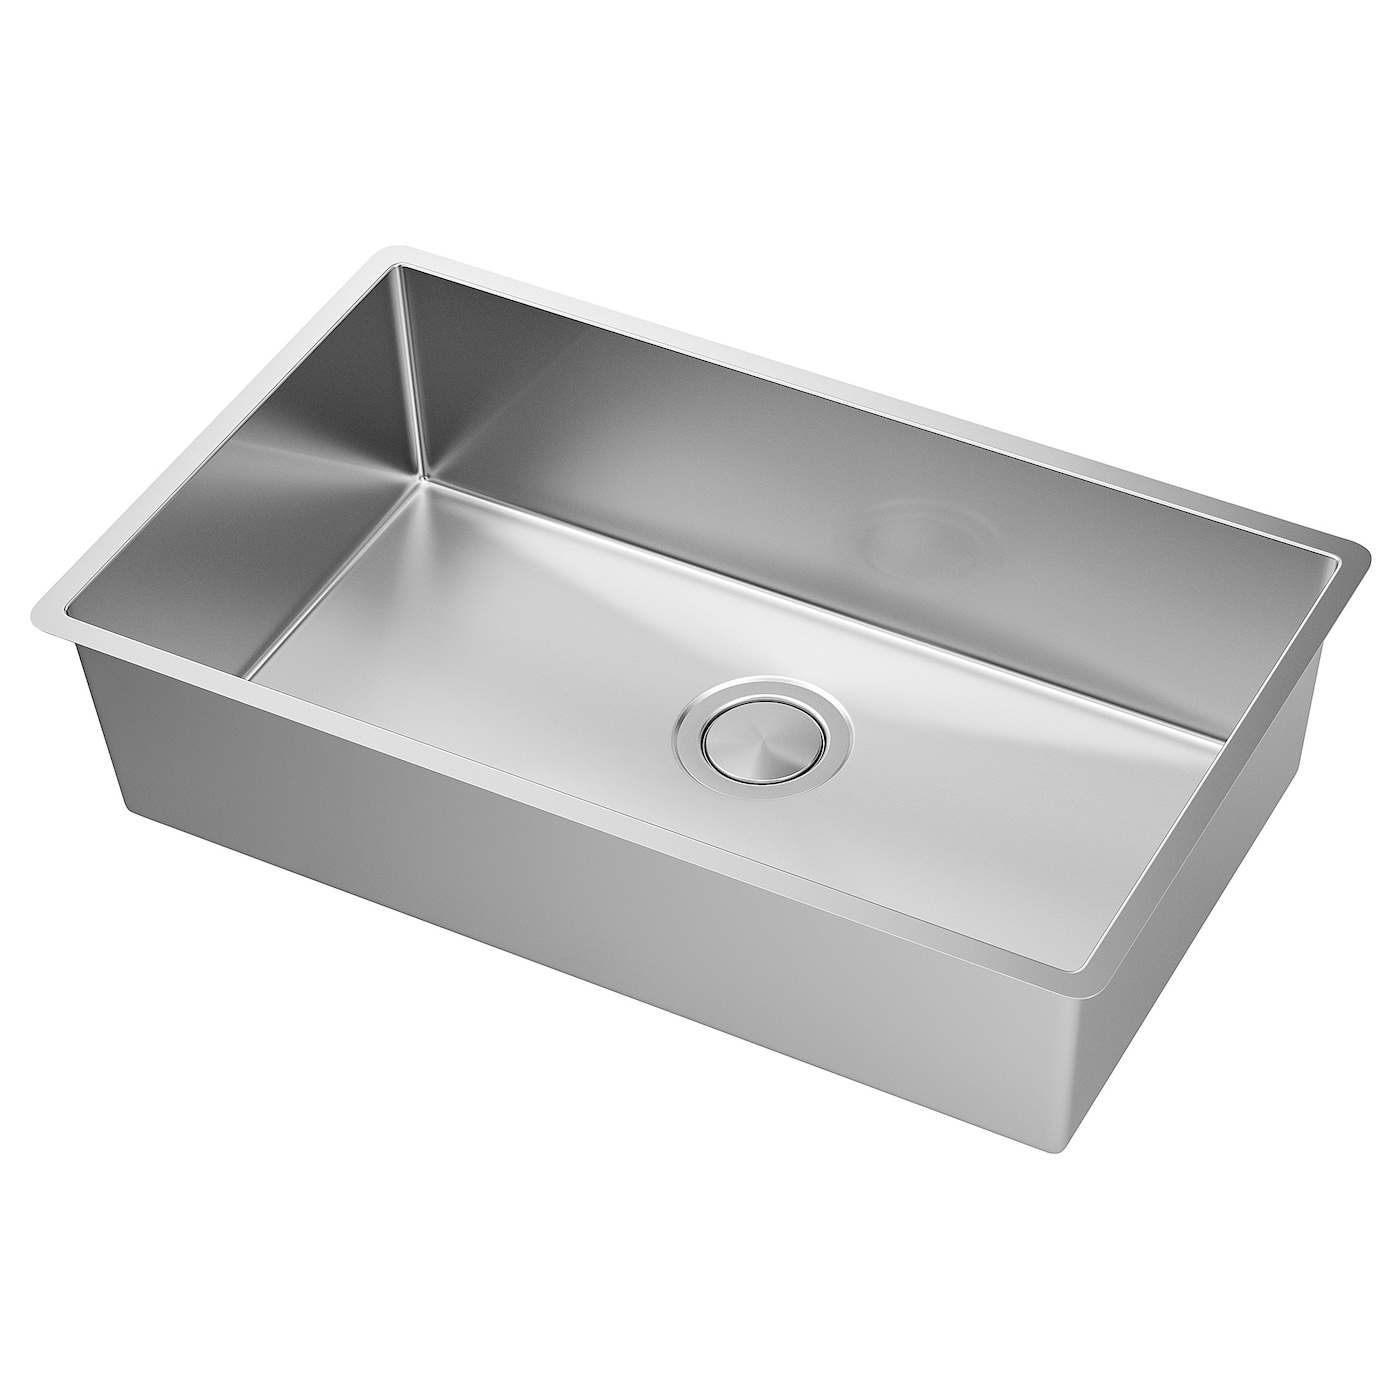 Sink Stainless Steel Bowl Depth